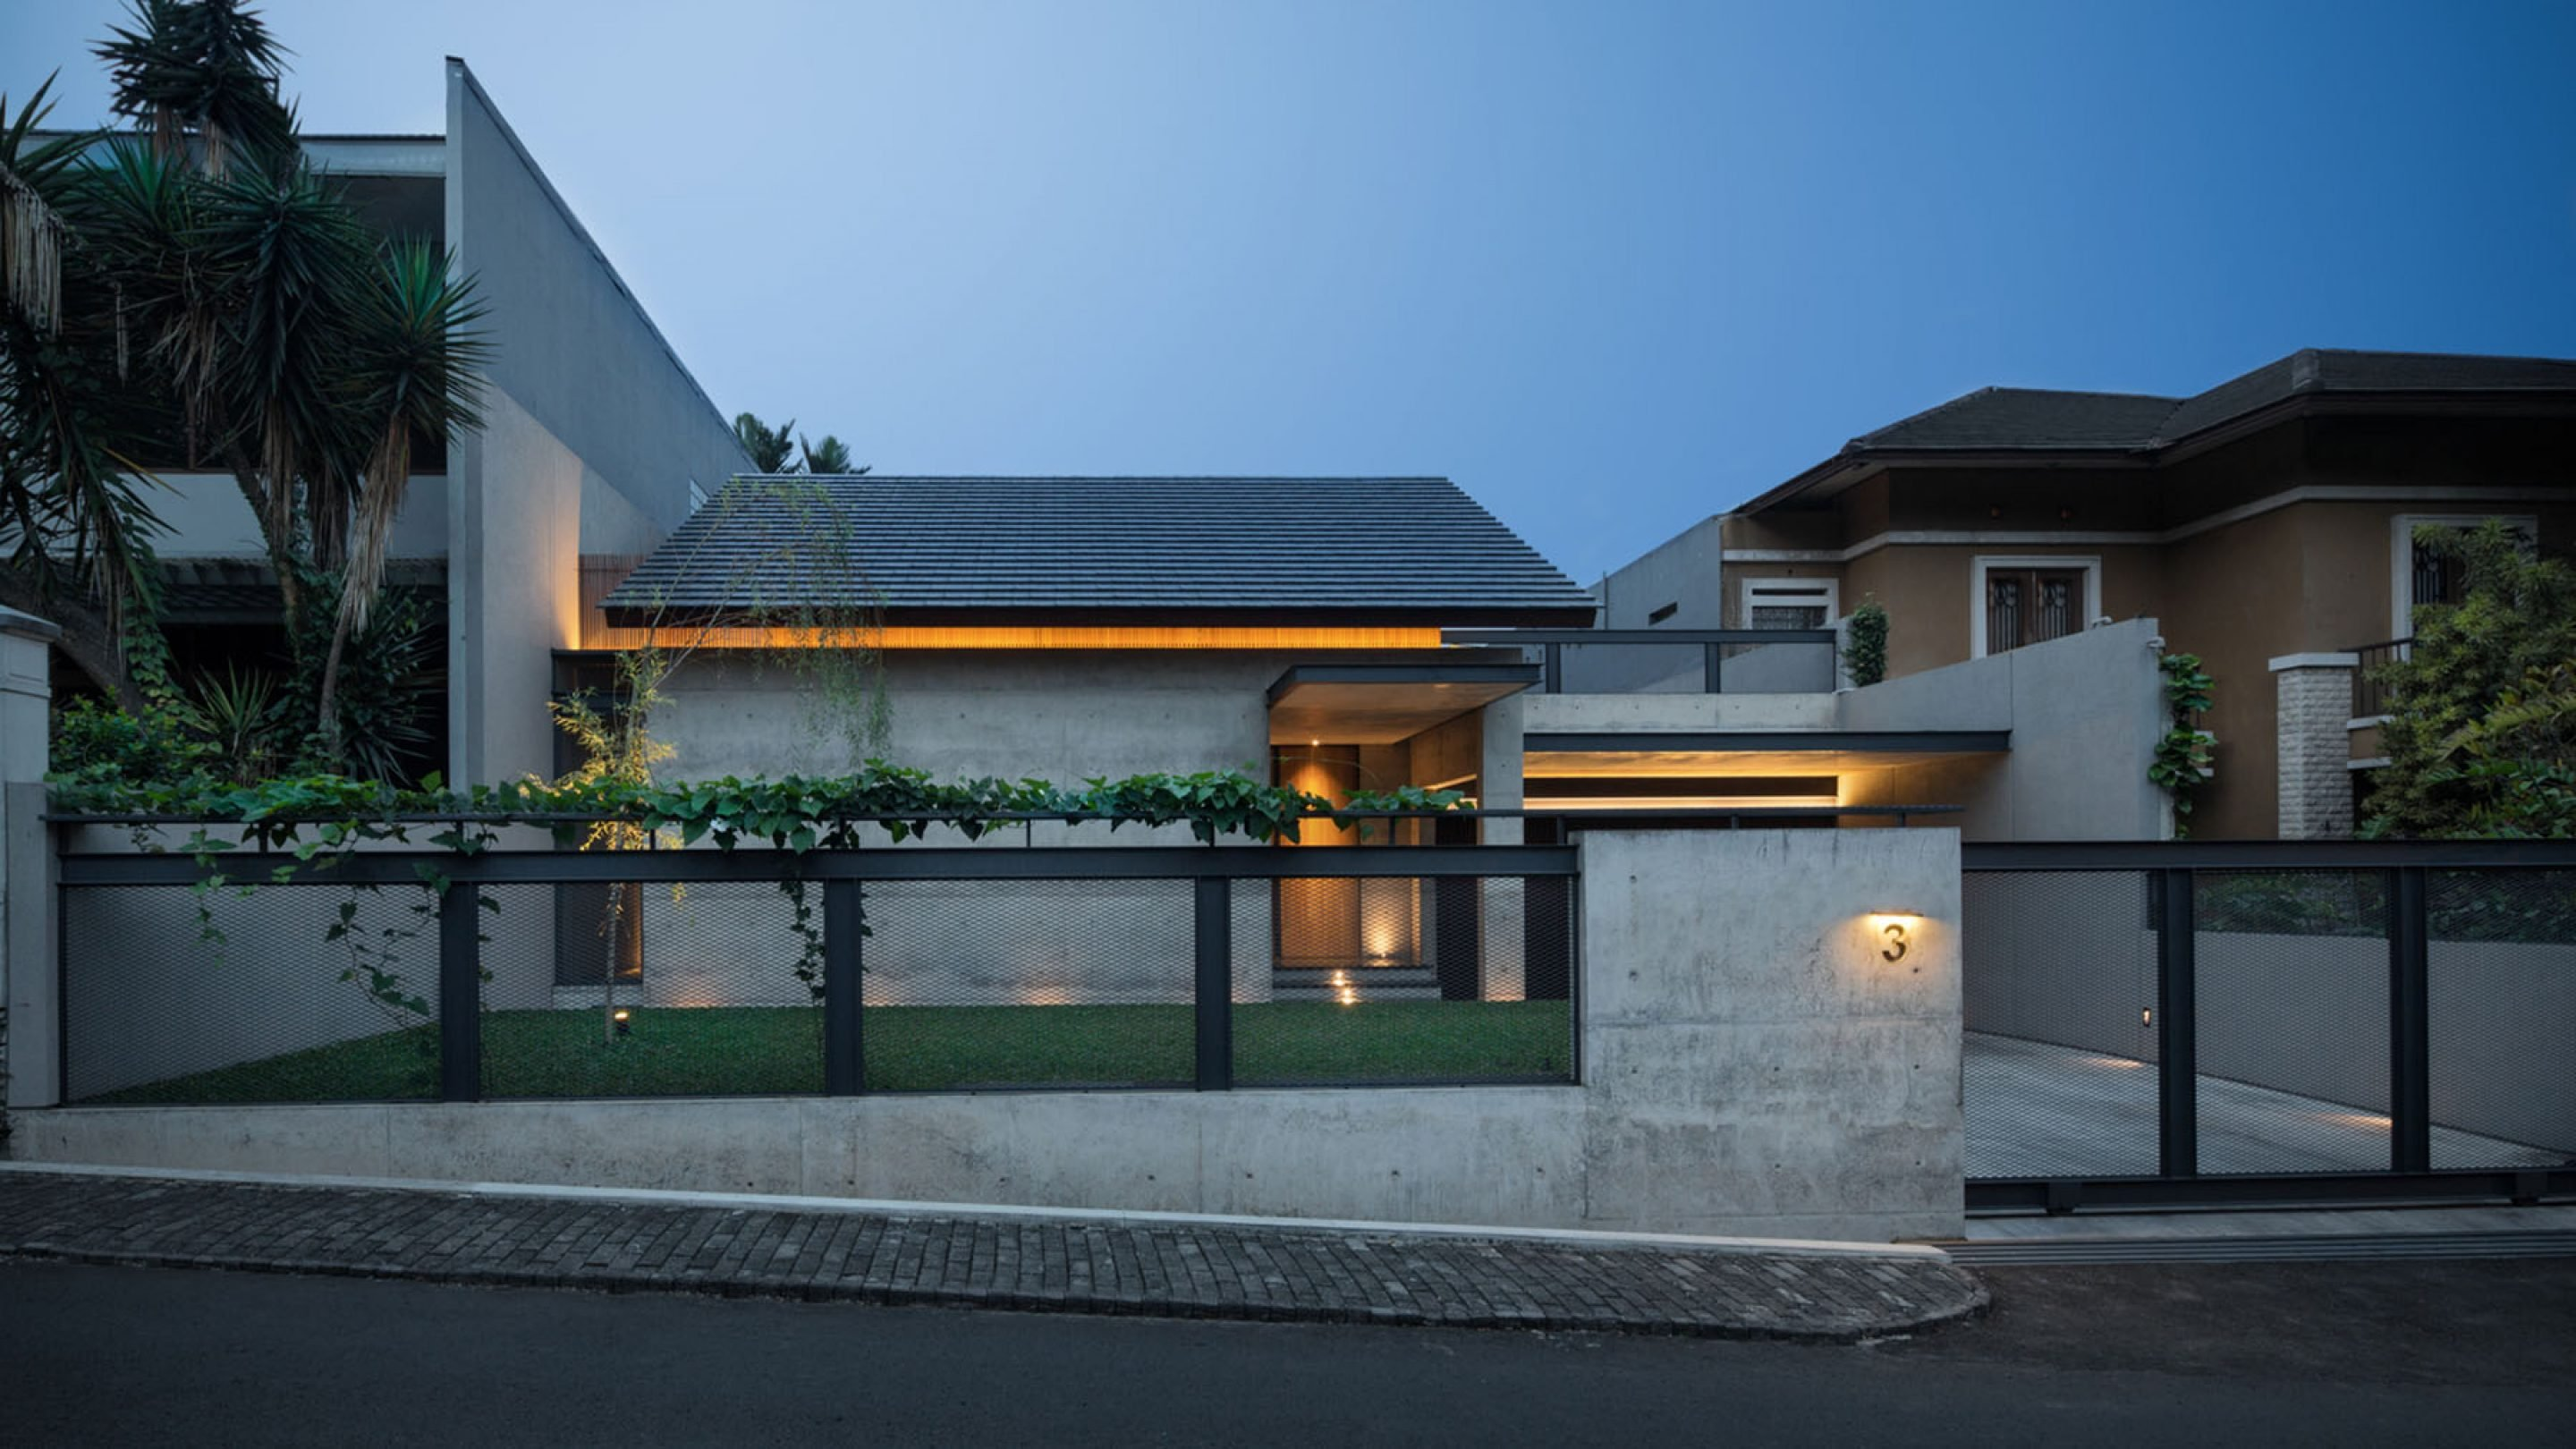 iGNANT-Architecture-Pranala-Associates-Hikari-House-021